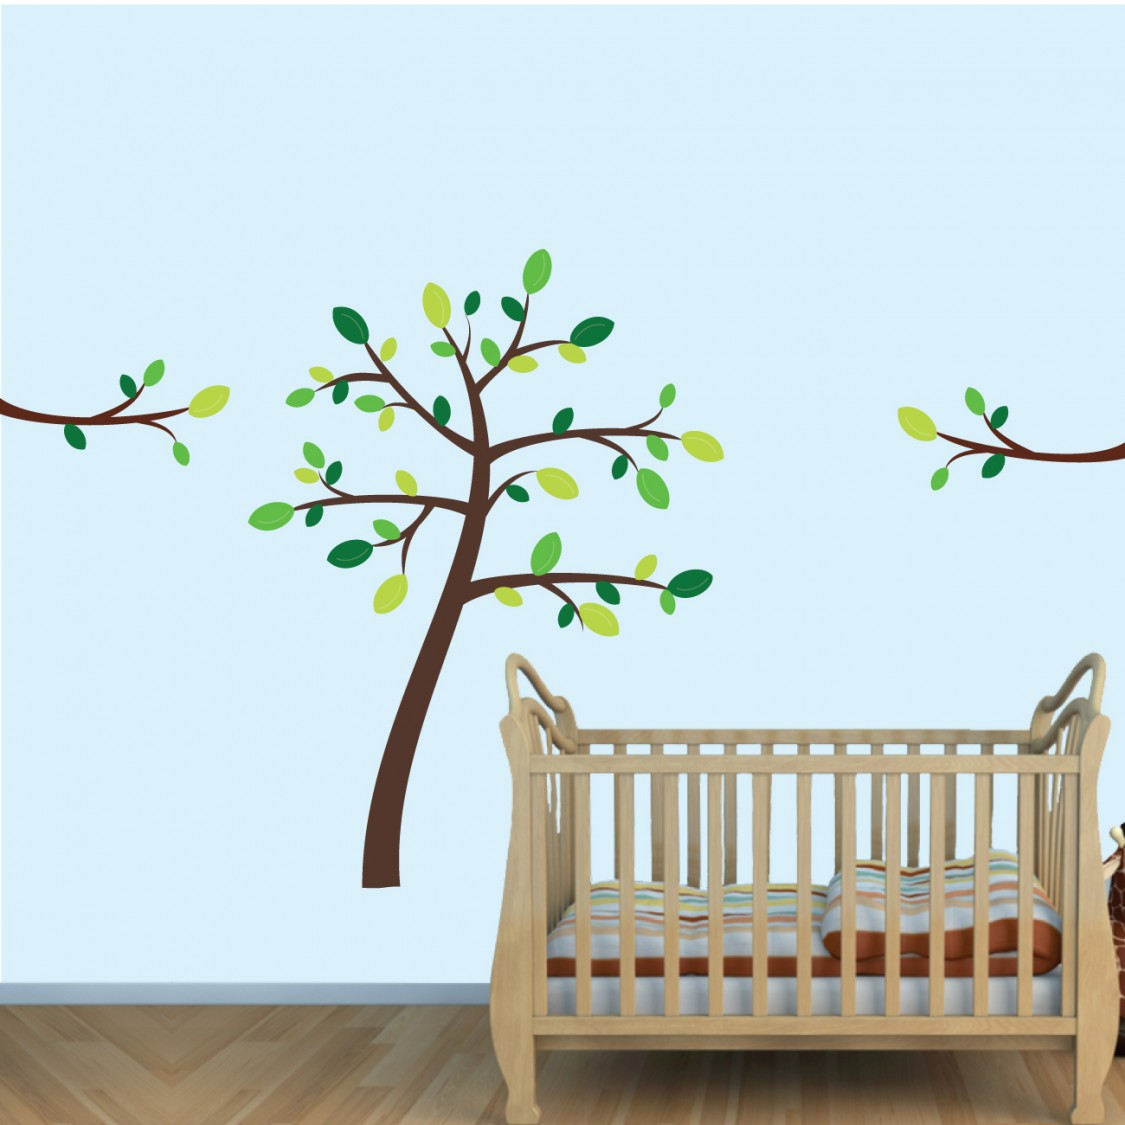 Green Amp Brown Jungle Tree Wall Decals Amp Tree Branch Wall